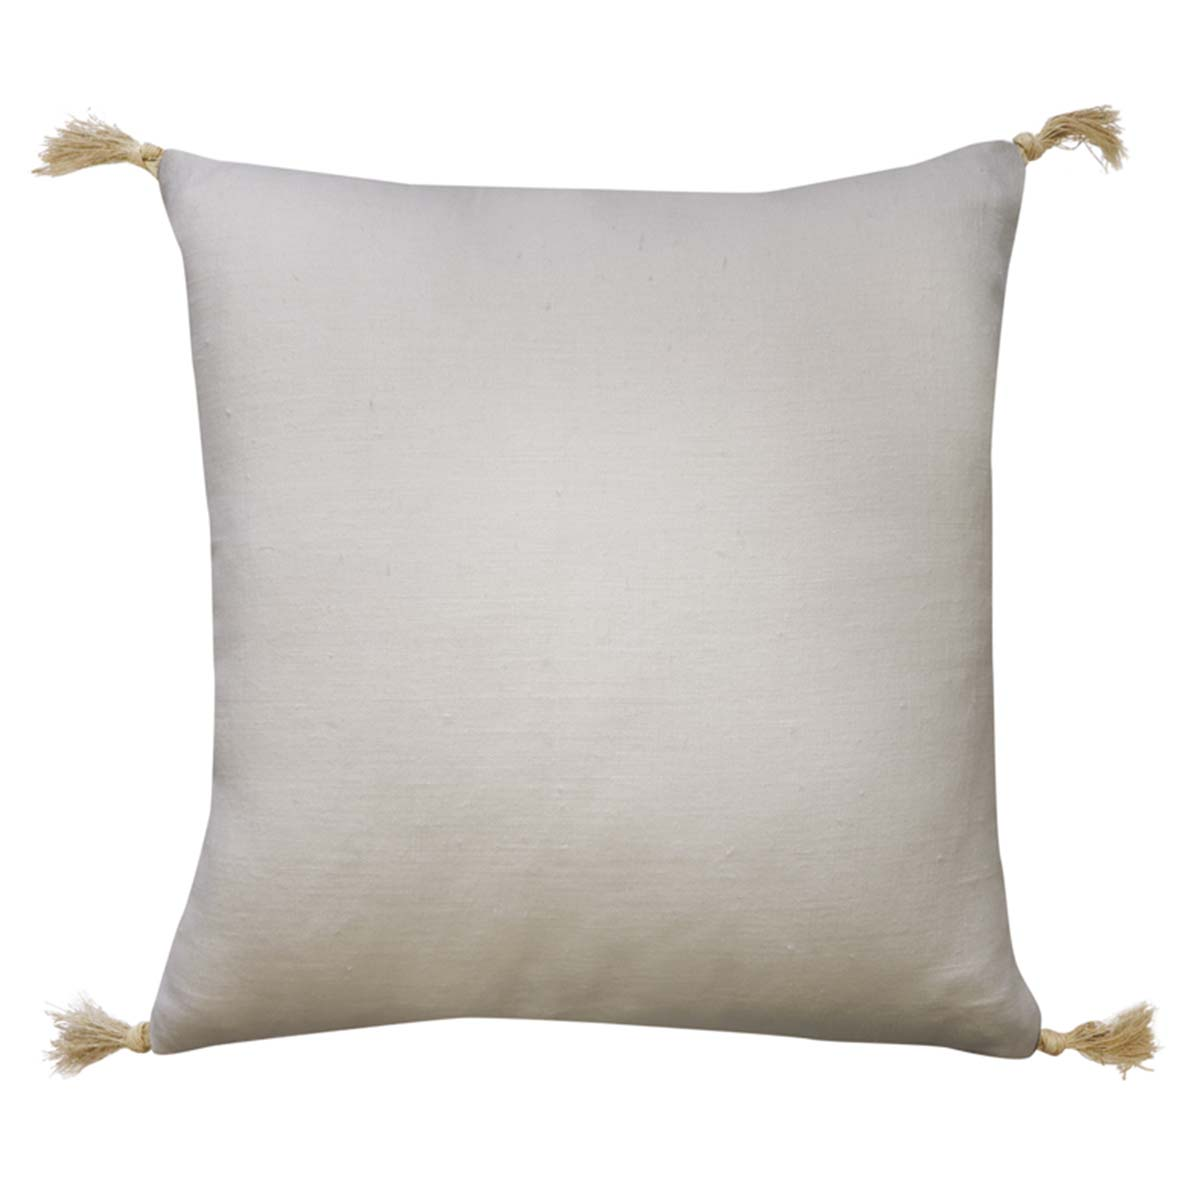 GOA FEATHER FILL CUSHION 55X55CM in off white